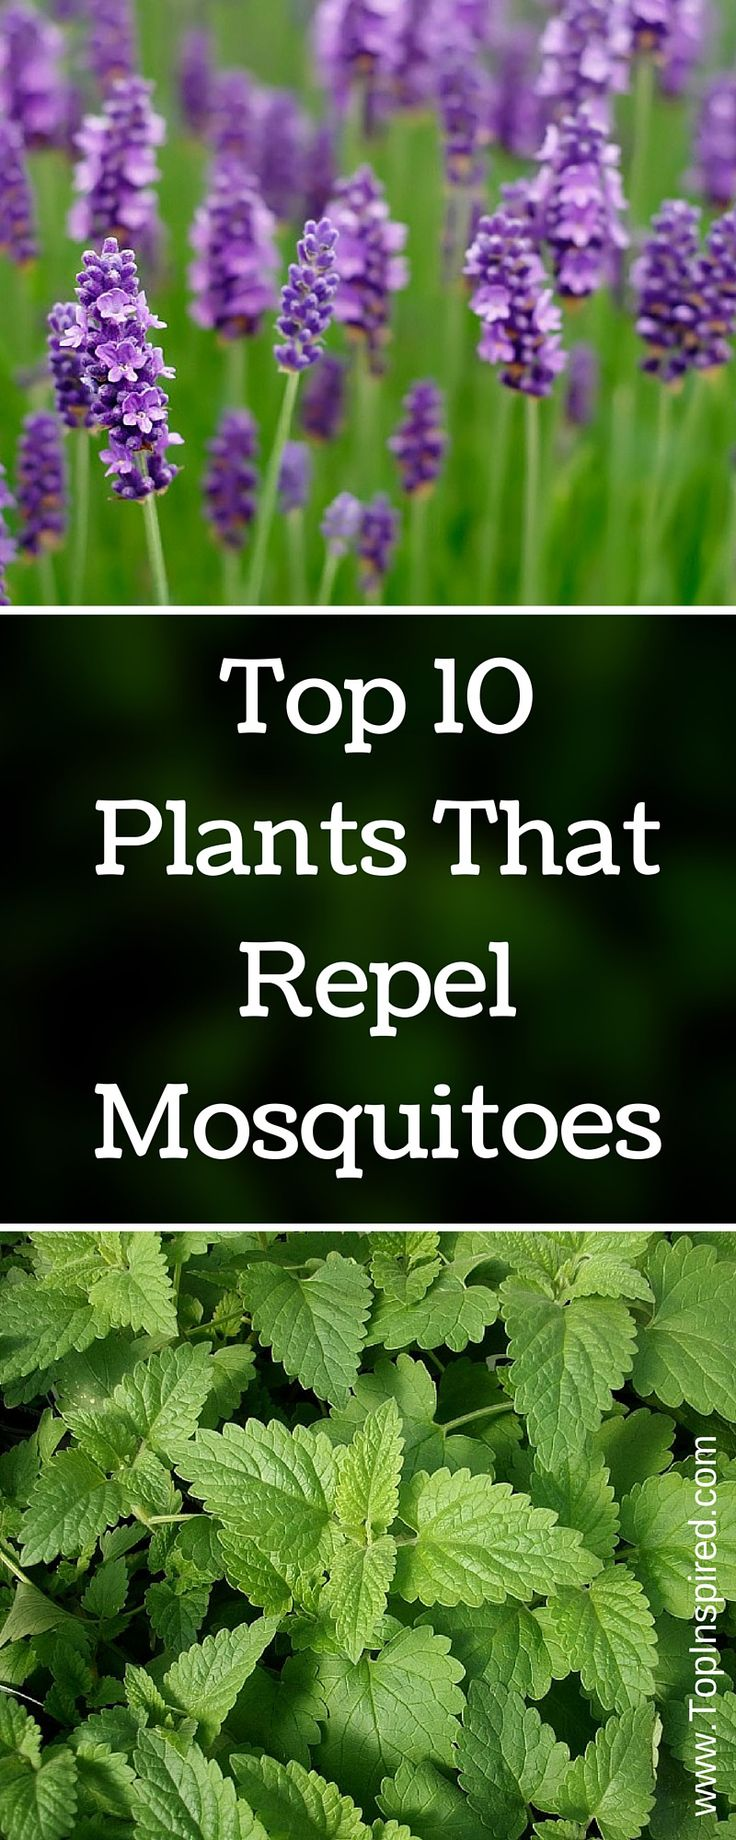 You will be surprised when you read the plant's names because some of them may be in your home already. - #Mosquitoes #Mosquito_Repellent